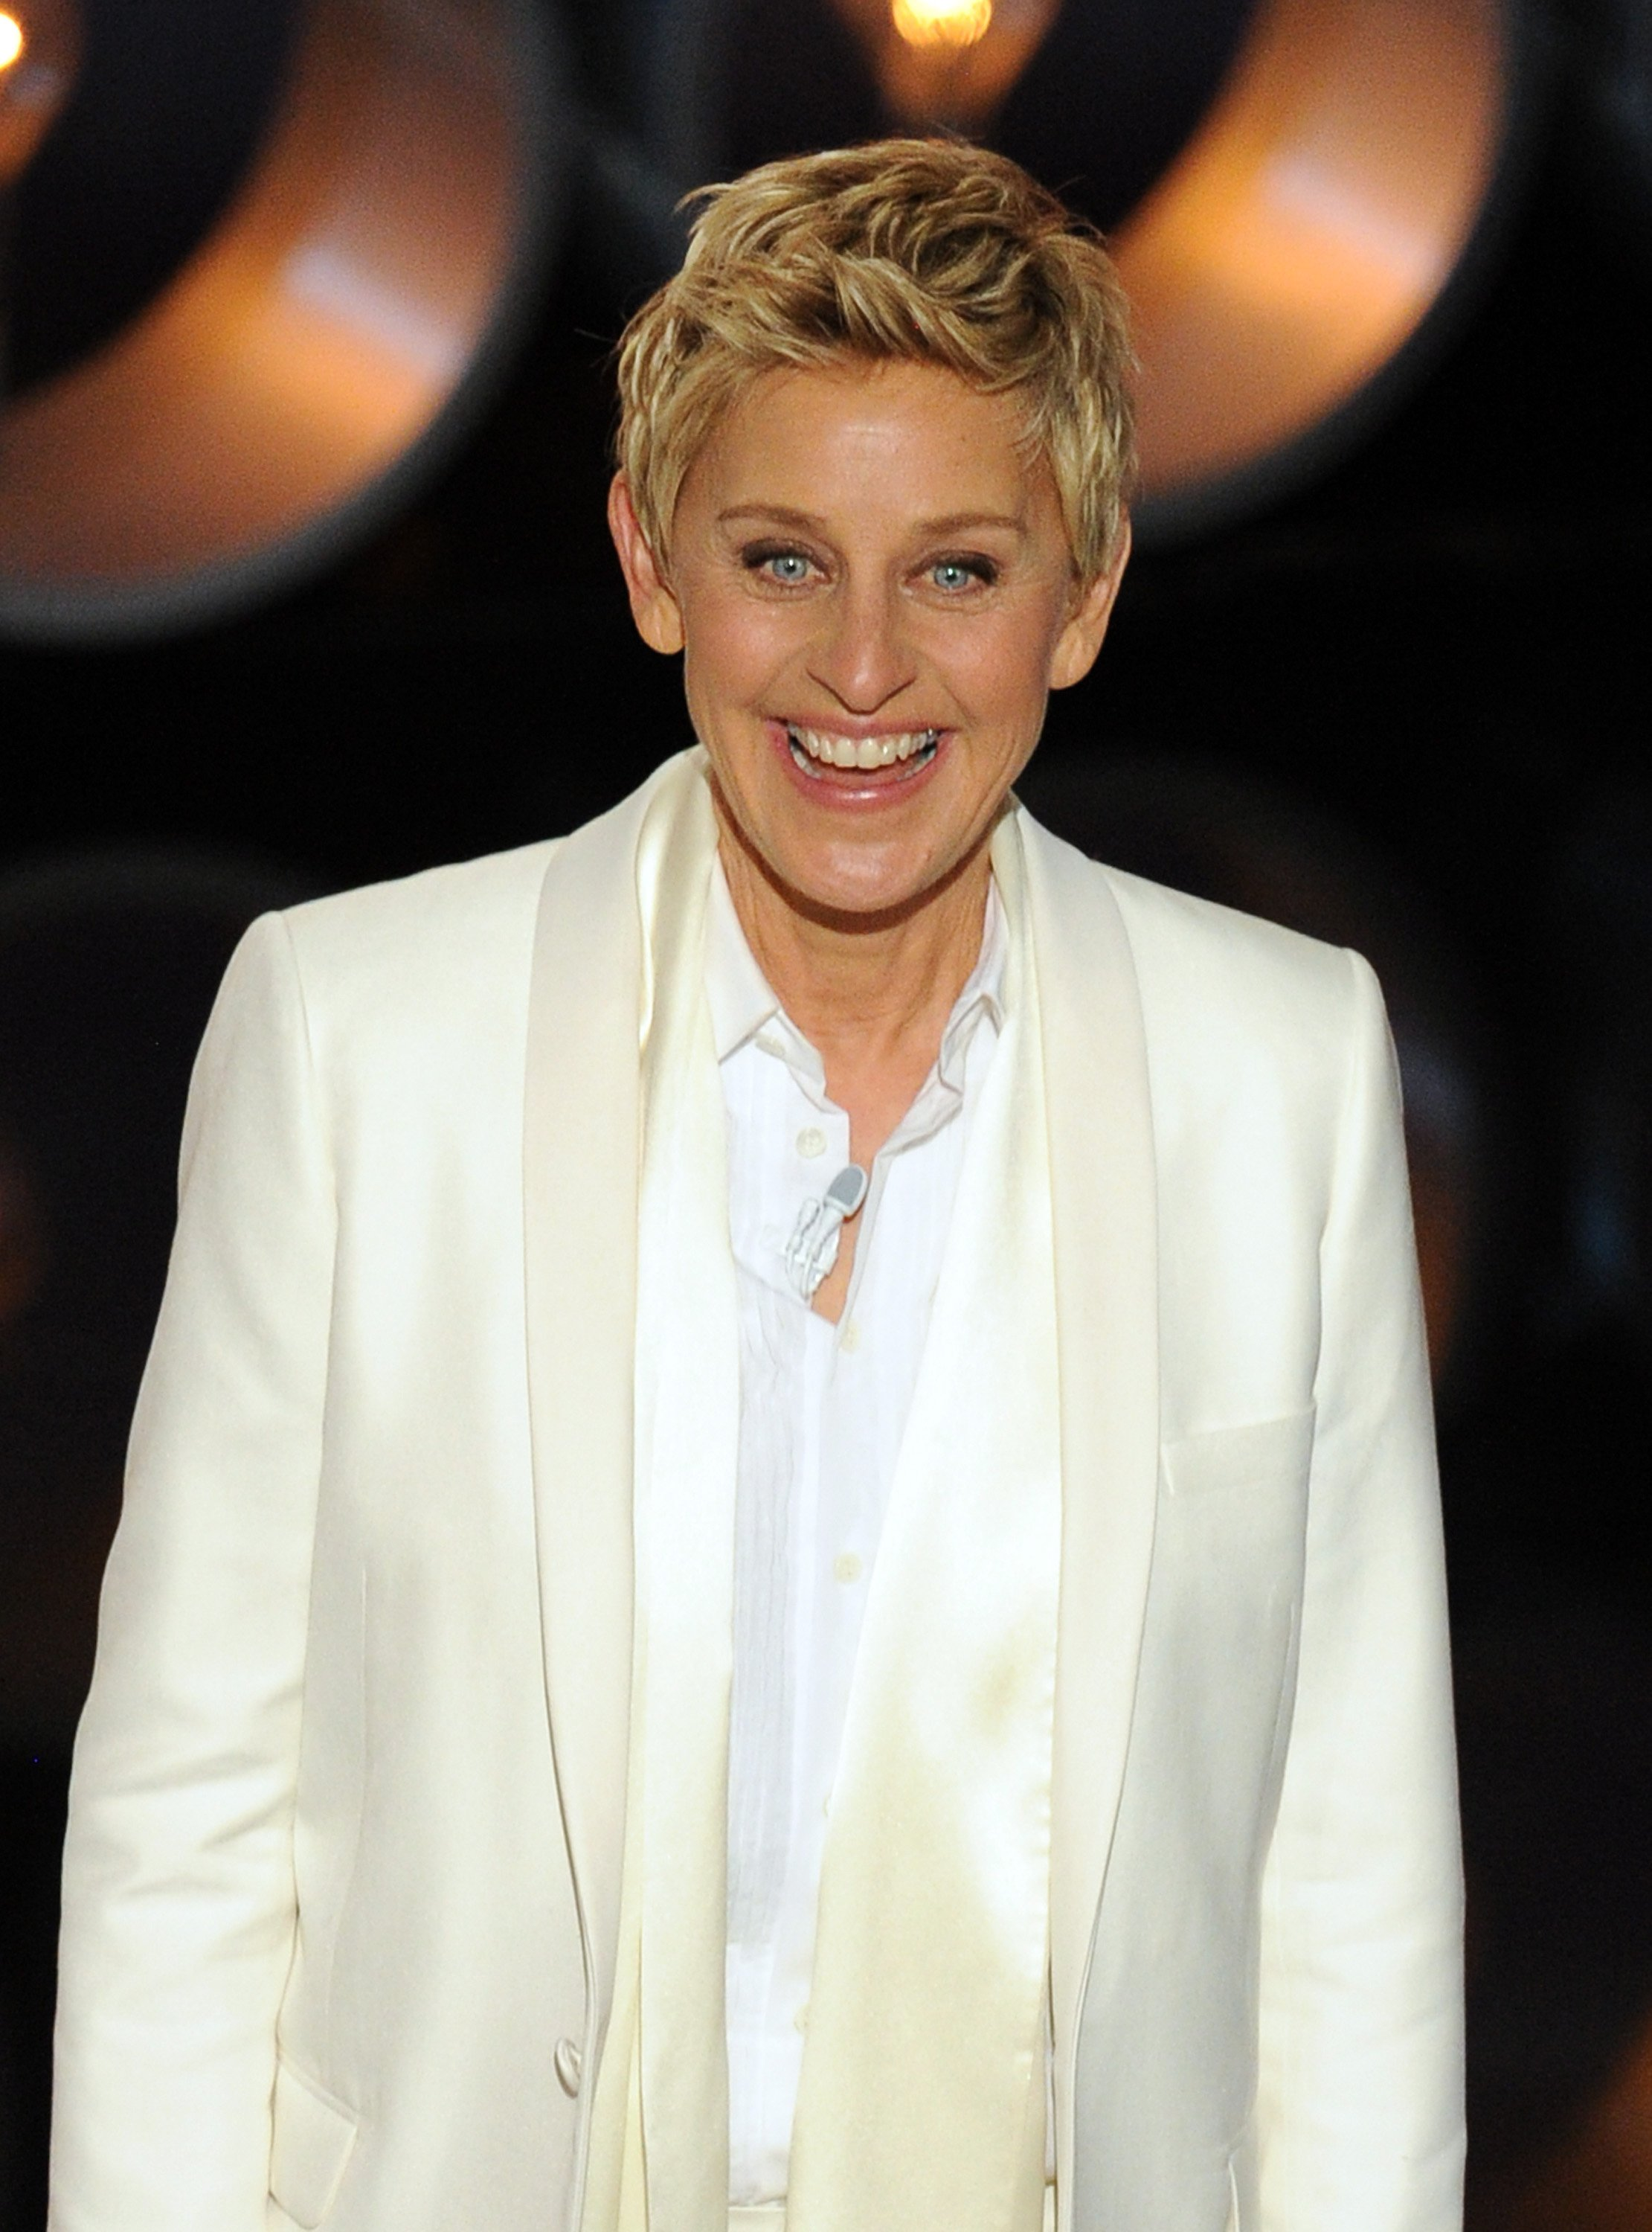 Ellen DeGeneres on March 2, 2014 in Hollywood, California | Source: Getty Images